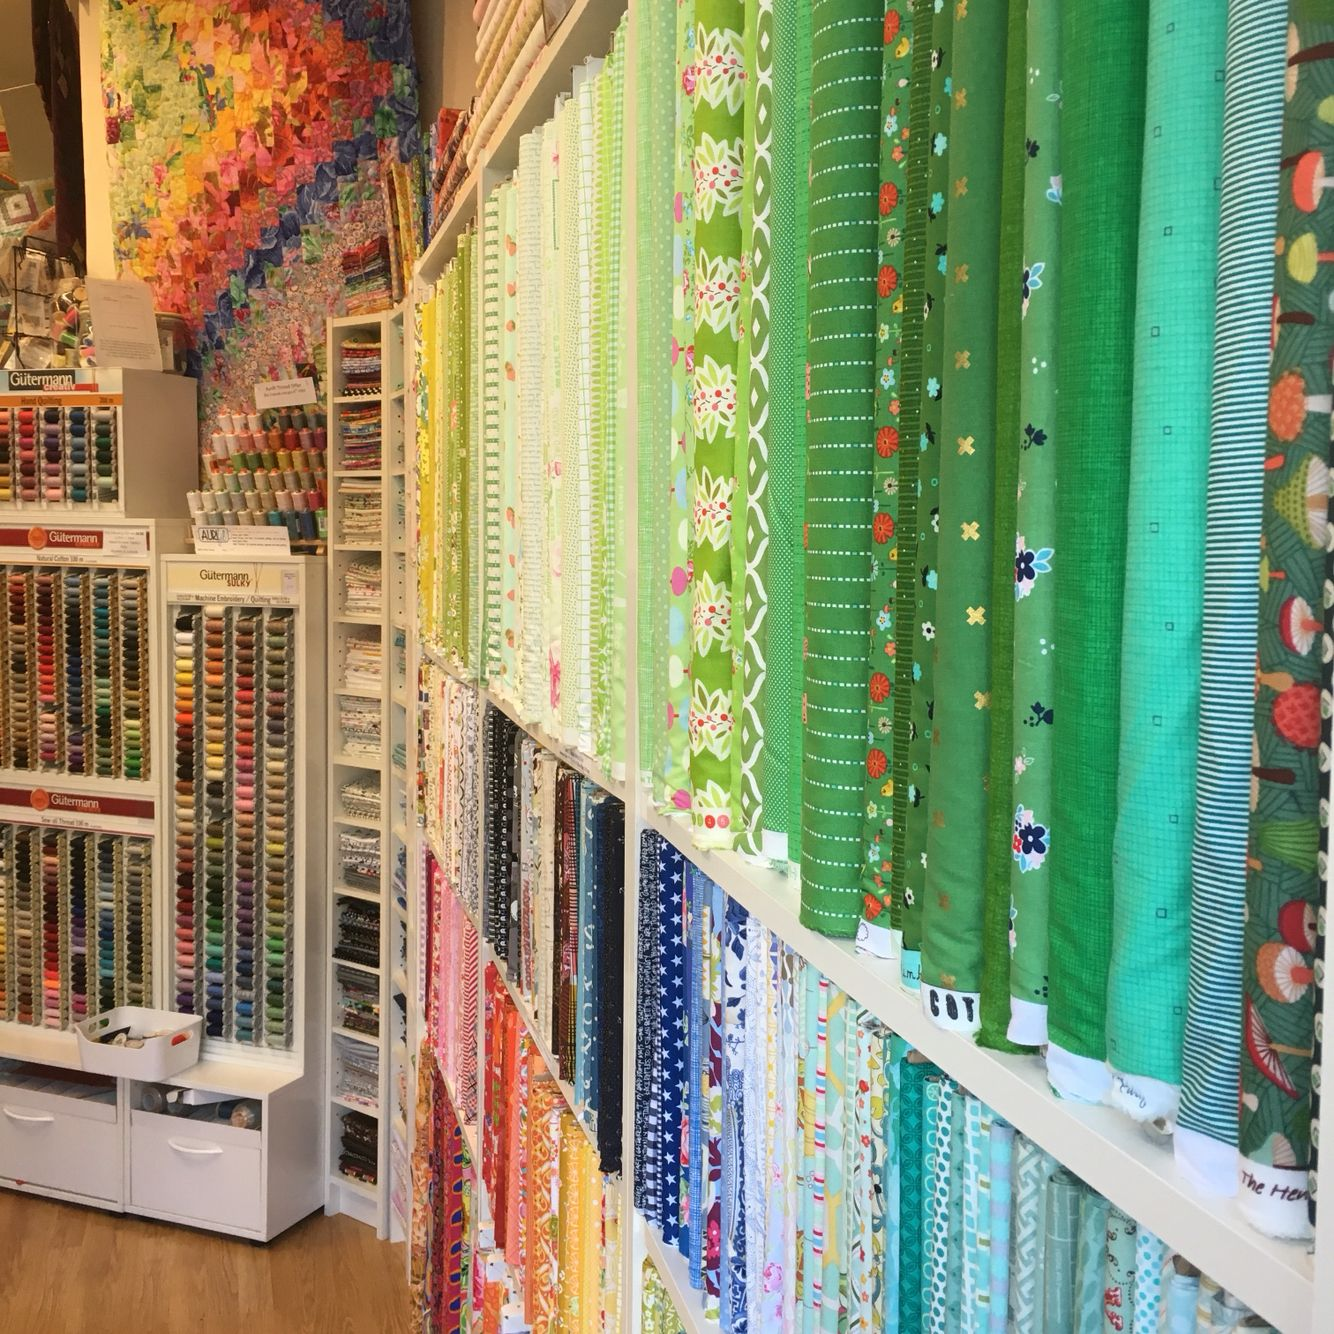 Tikki Patchwork in Kew Gardens London - a dedicated quilt fabric ... : quilting shops london - Adamdwight.com